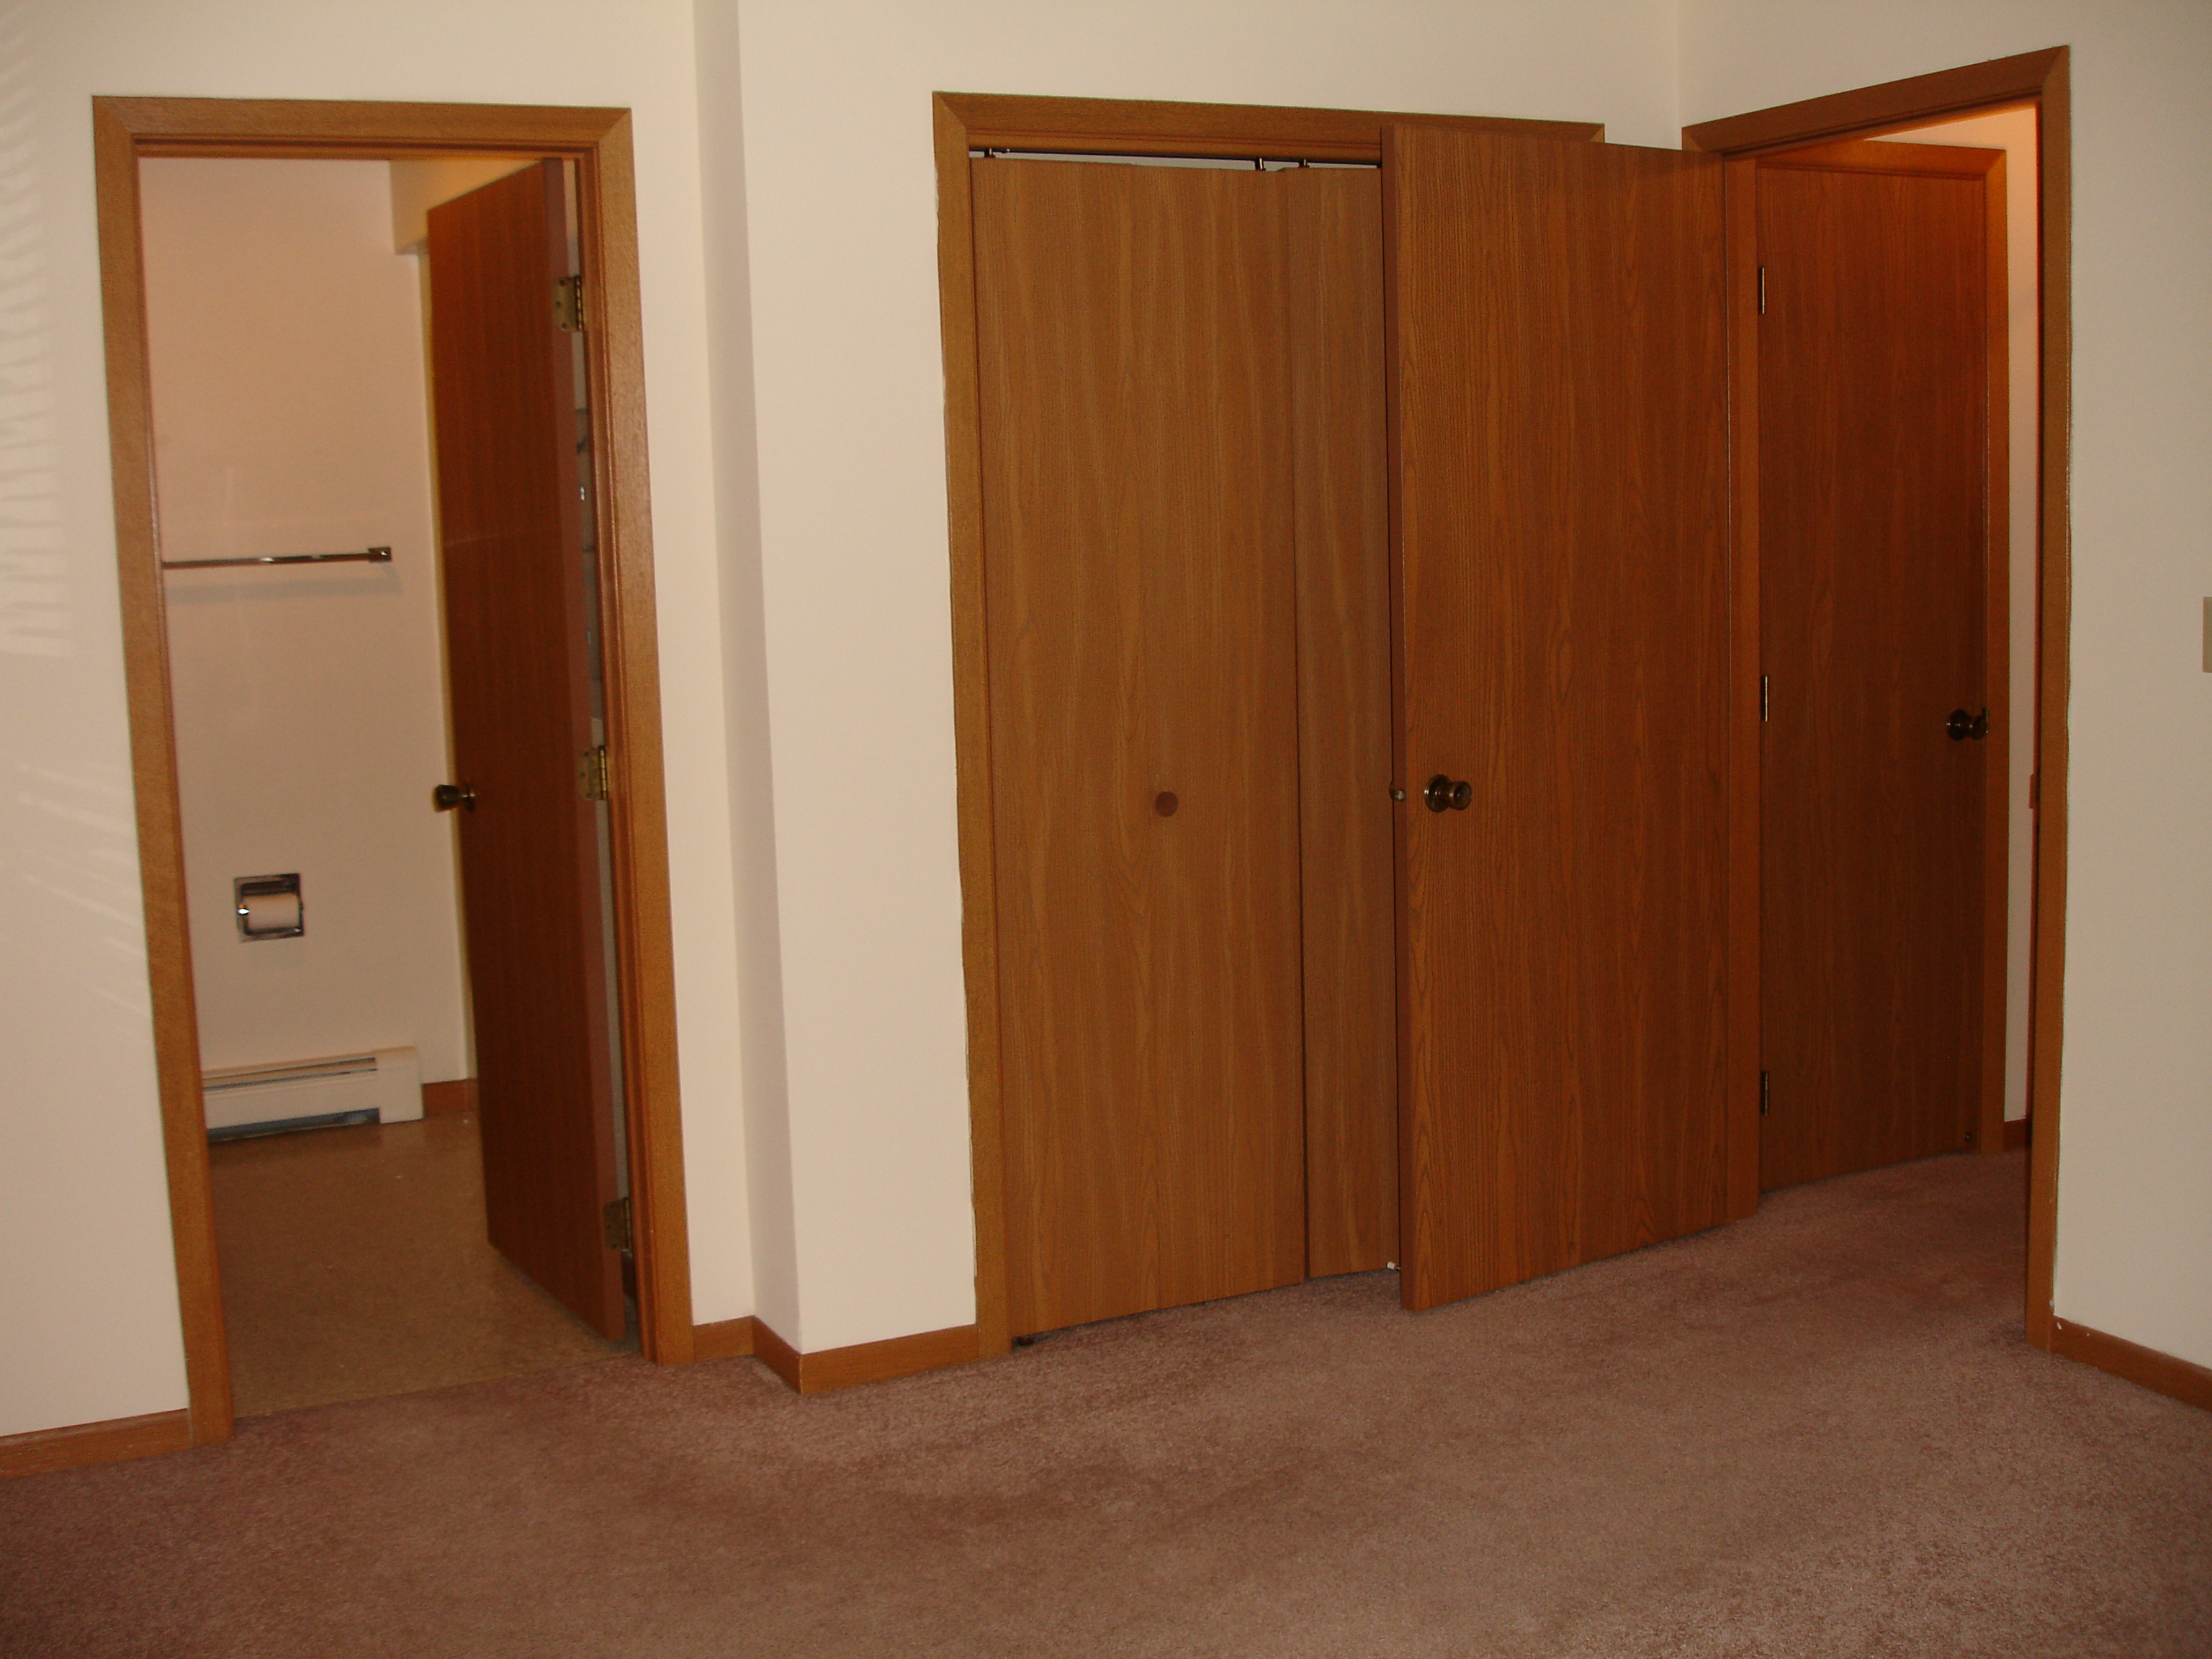 Rooms: Milwaukee Area Apartments For Rent » Shovers Realty, LLC